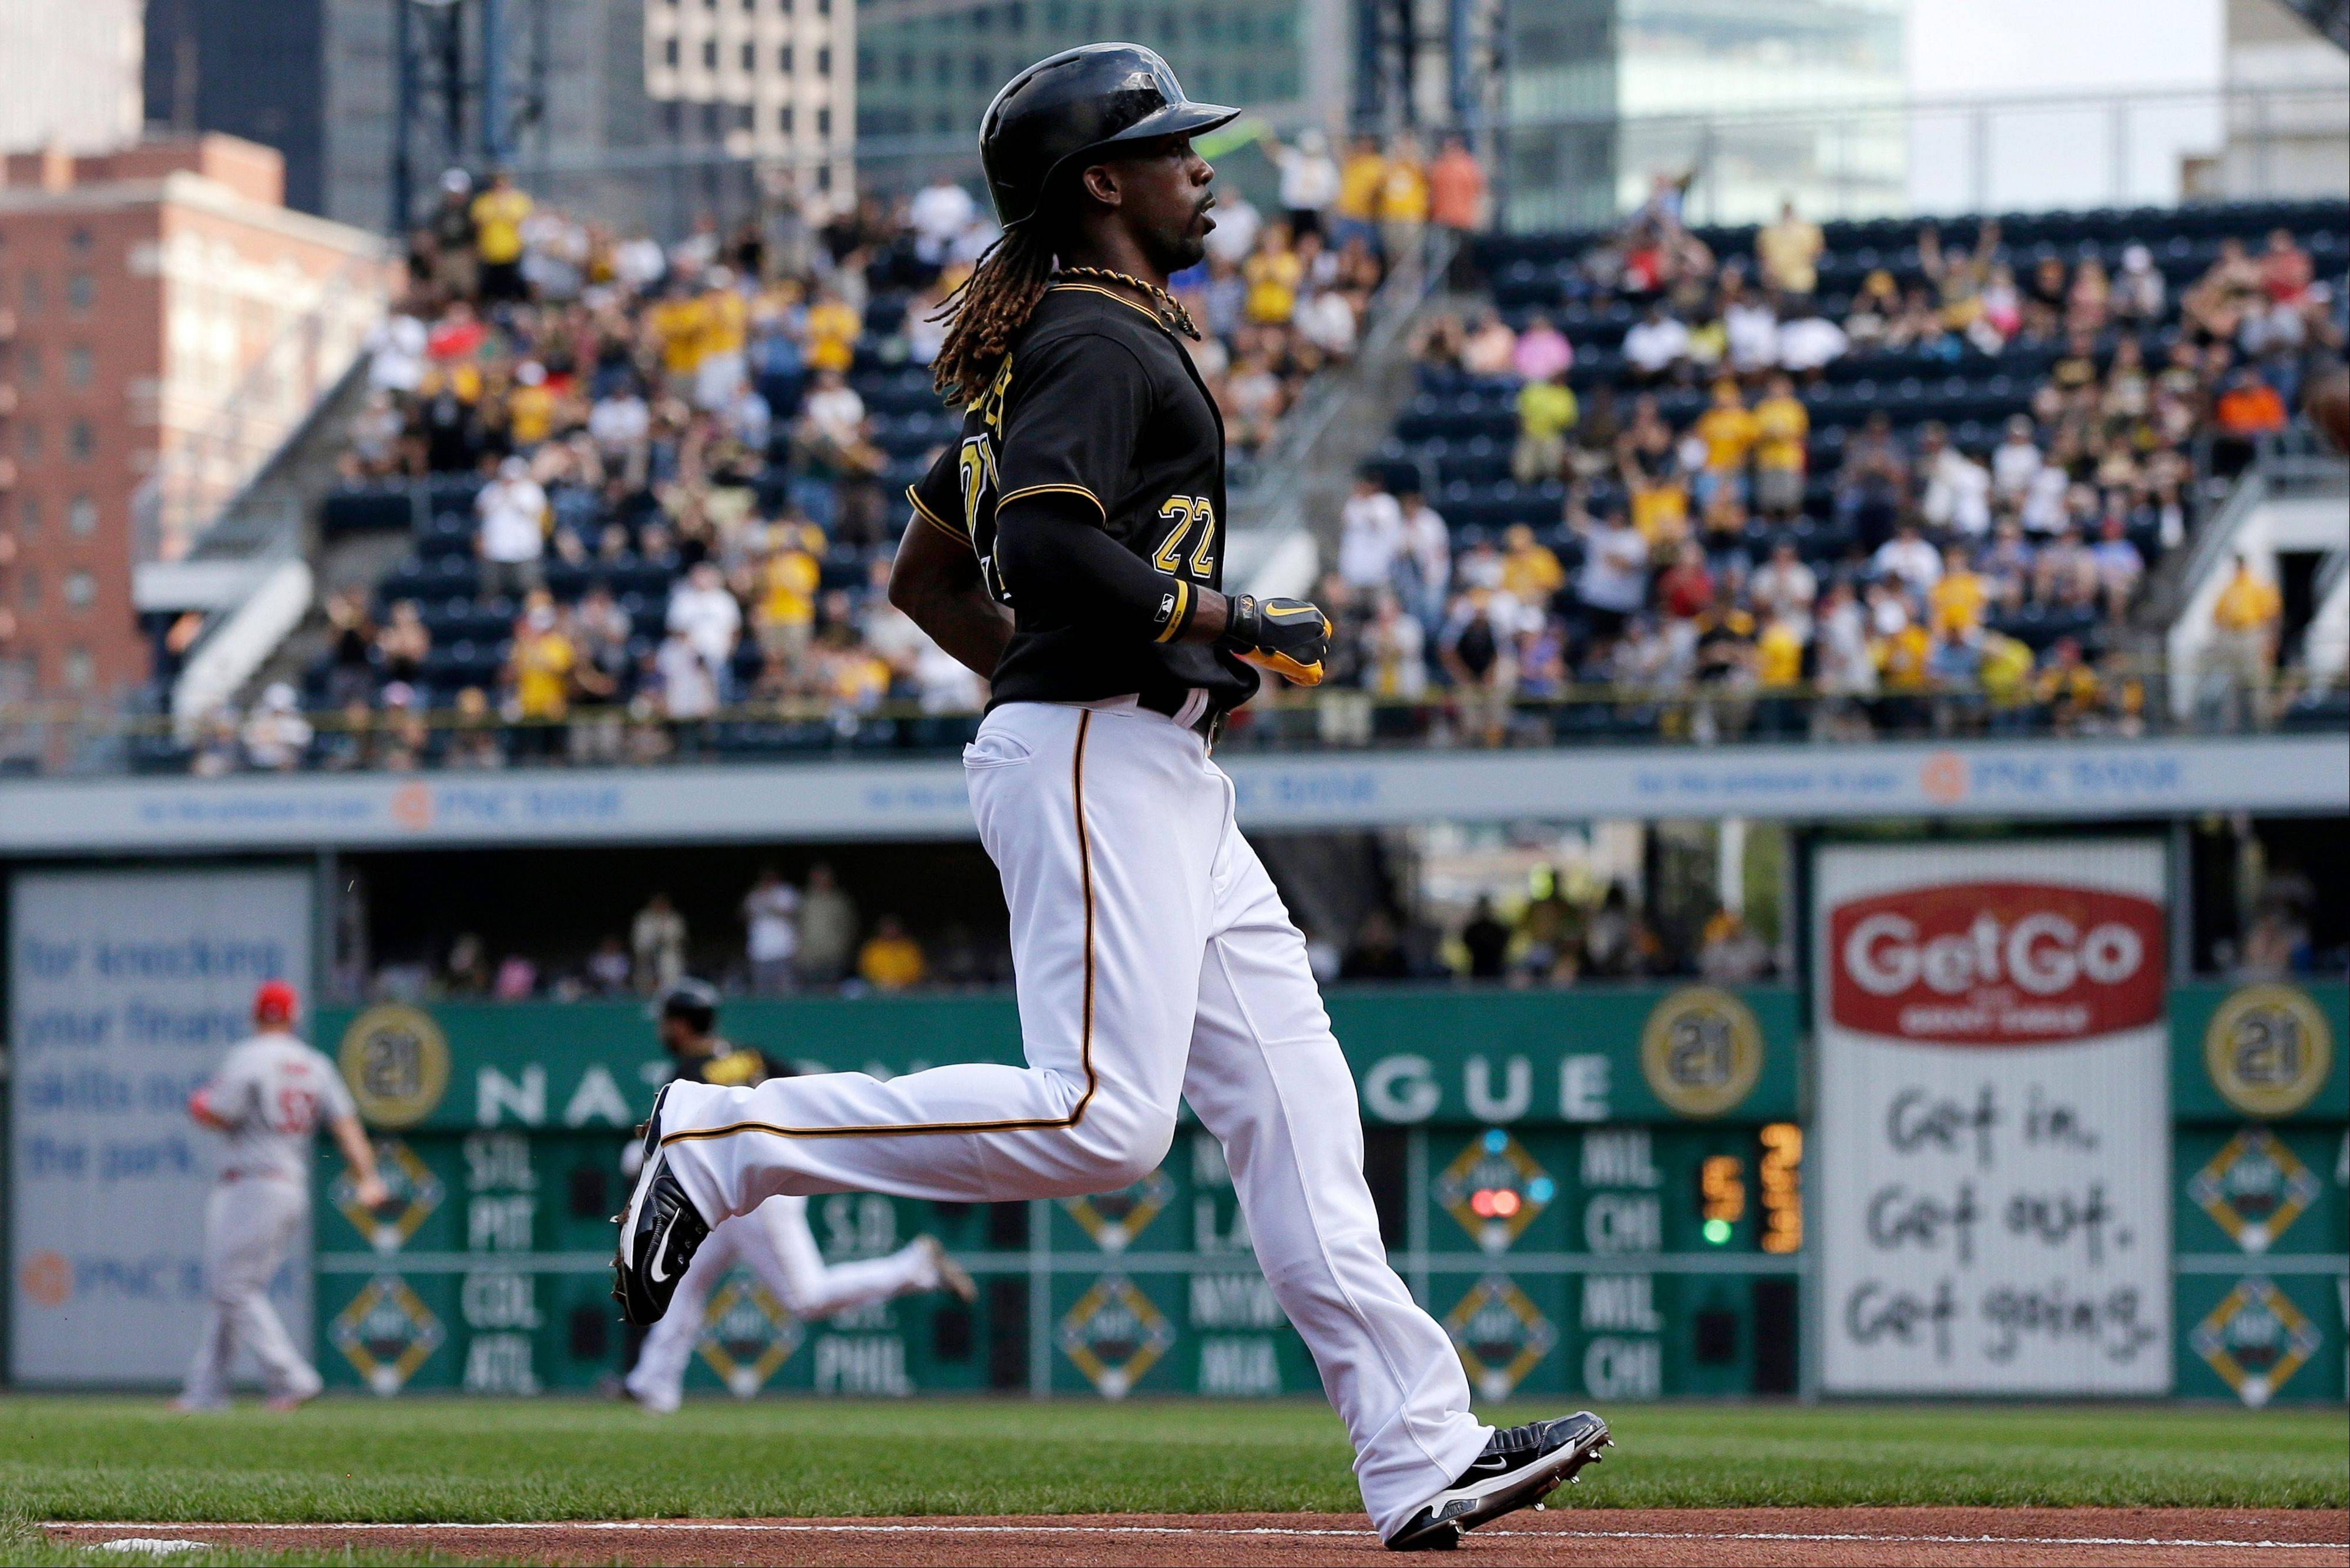 Pittsburgh Pirates' Andrew McCutchen scores on a double by Pedro Alvarez off St. Louis Cardinals starting pitcher Lance Lynn during the first inning of a baseball game in Pittsburgh on Tuesday.